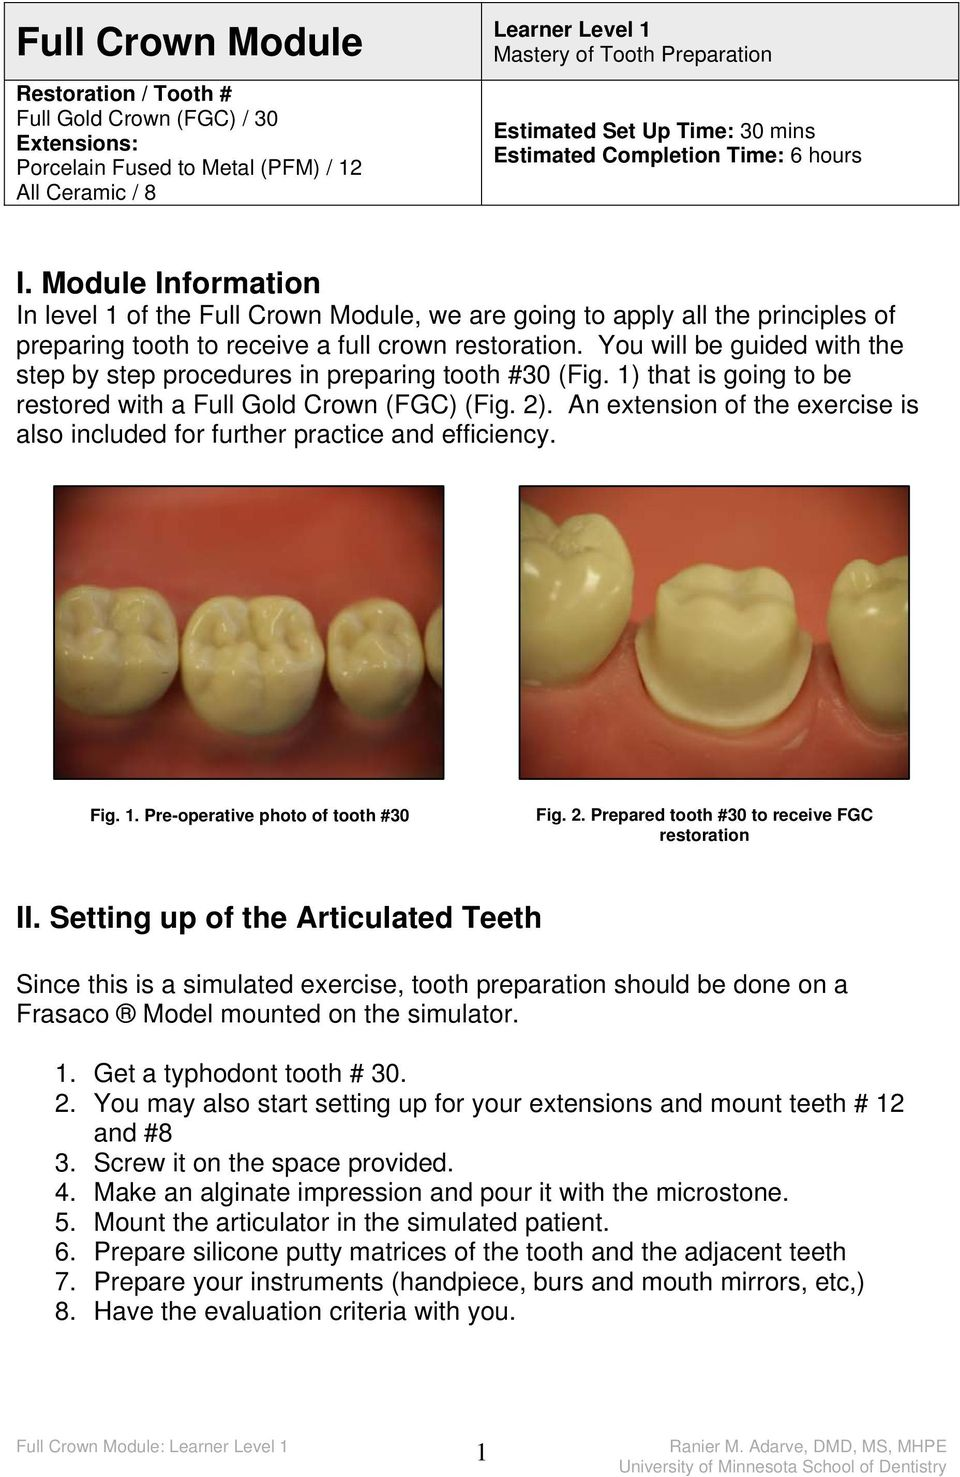 You will be guided with the step by step procedures in preparing tooth #30 (Fig. 1) that is going to be restored with a Full Gold Crown (FGC) (Fig. 2).